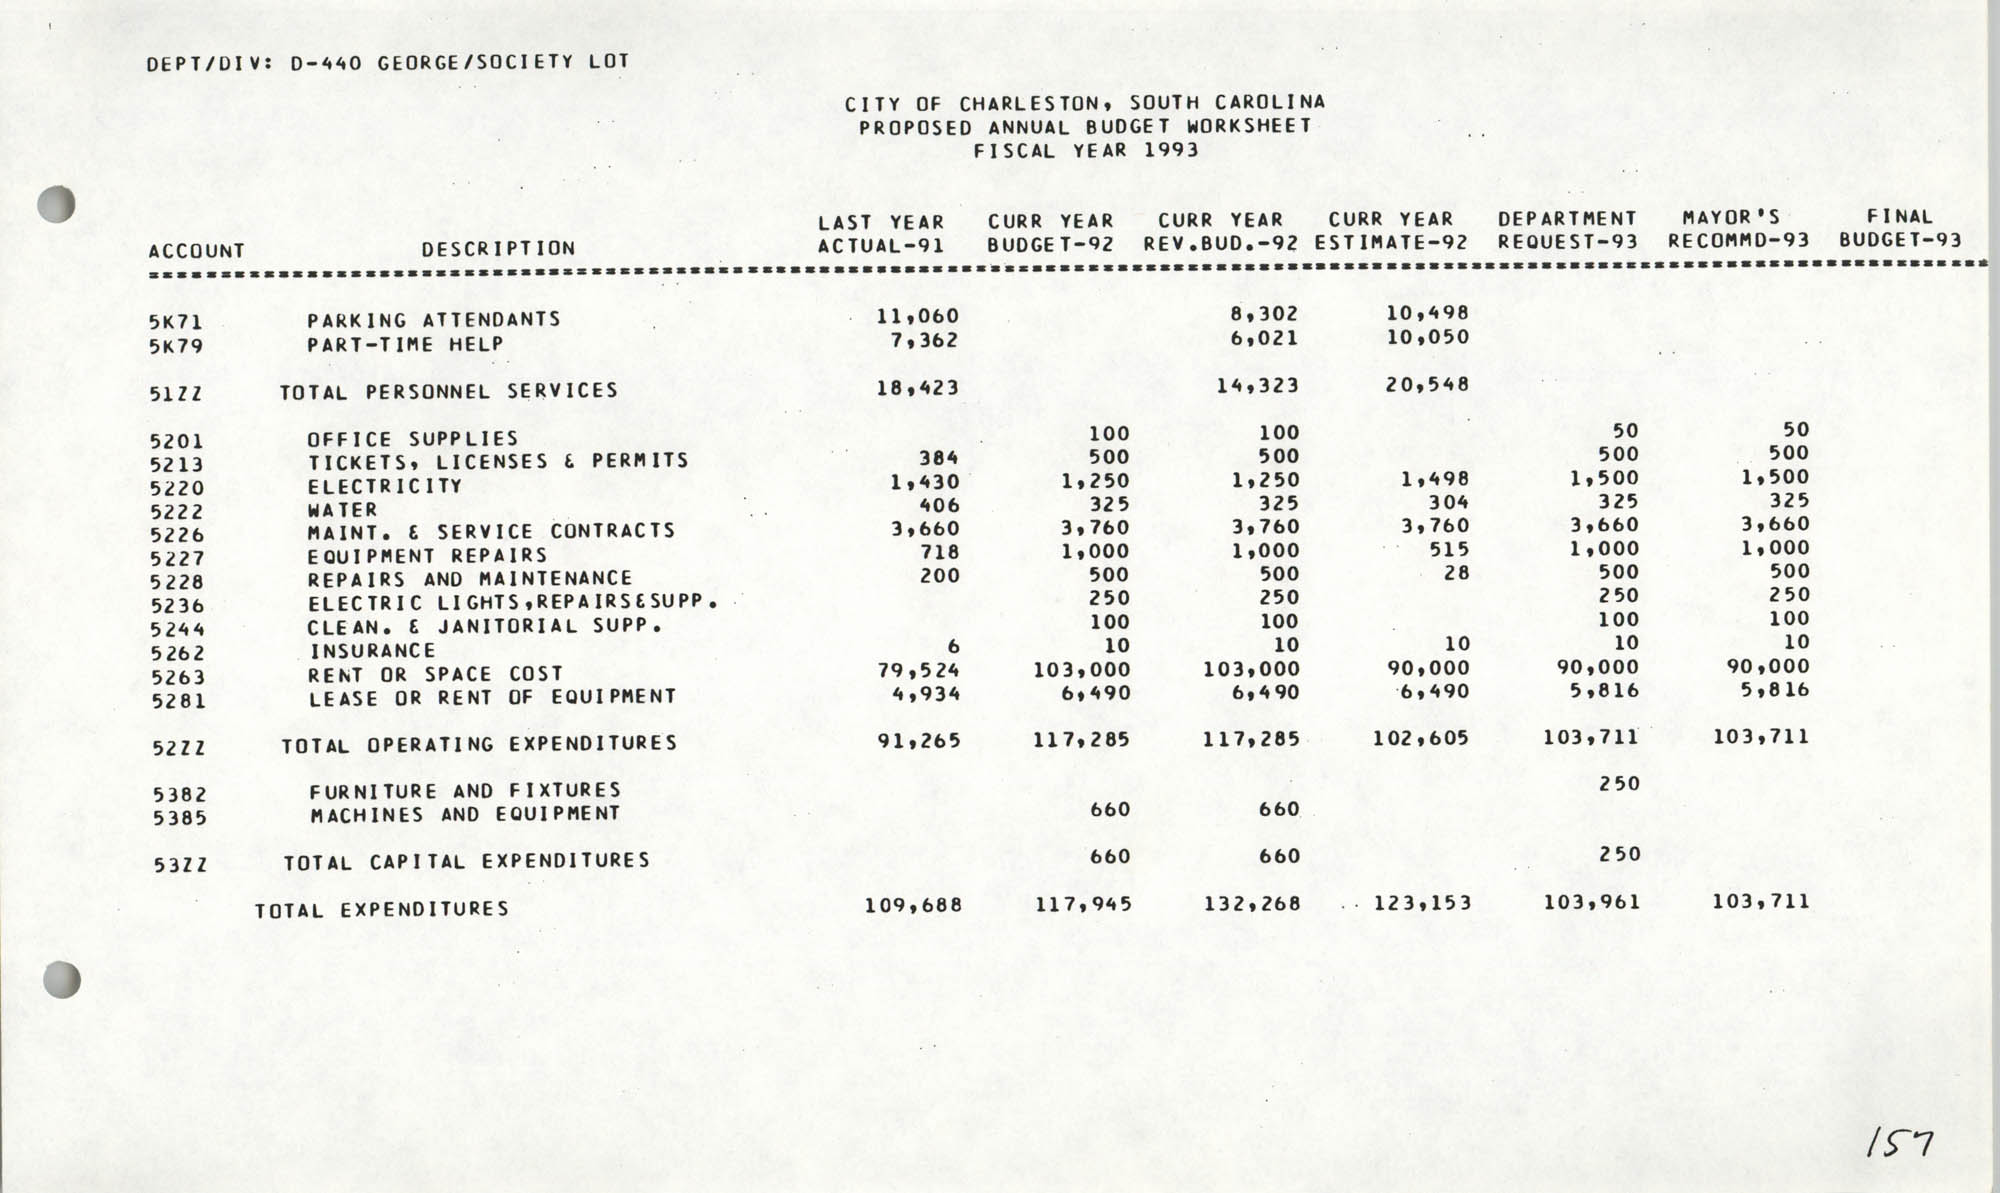 The City Council of Charleston, South Carolina, 1993 Budget, Page 157